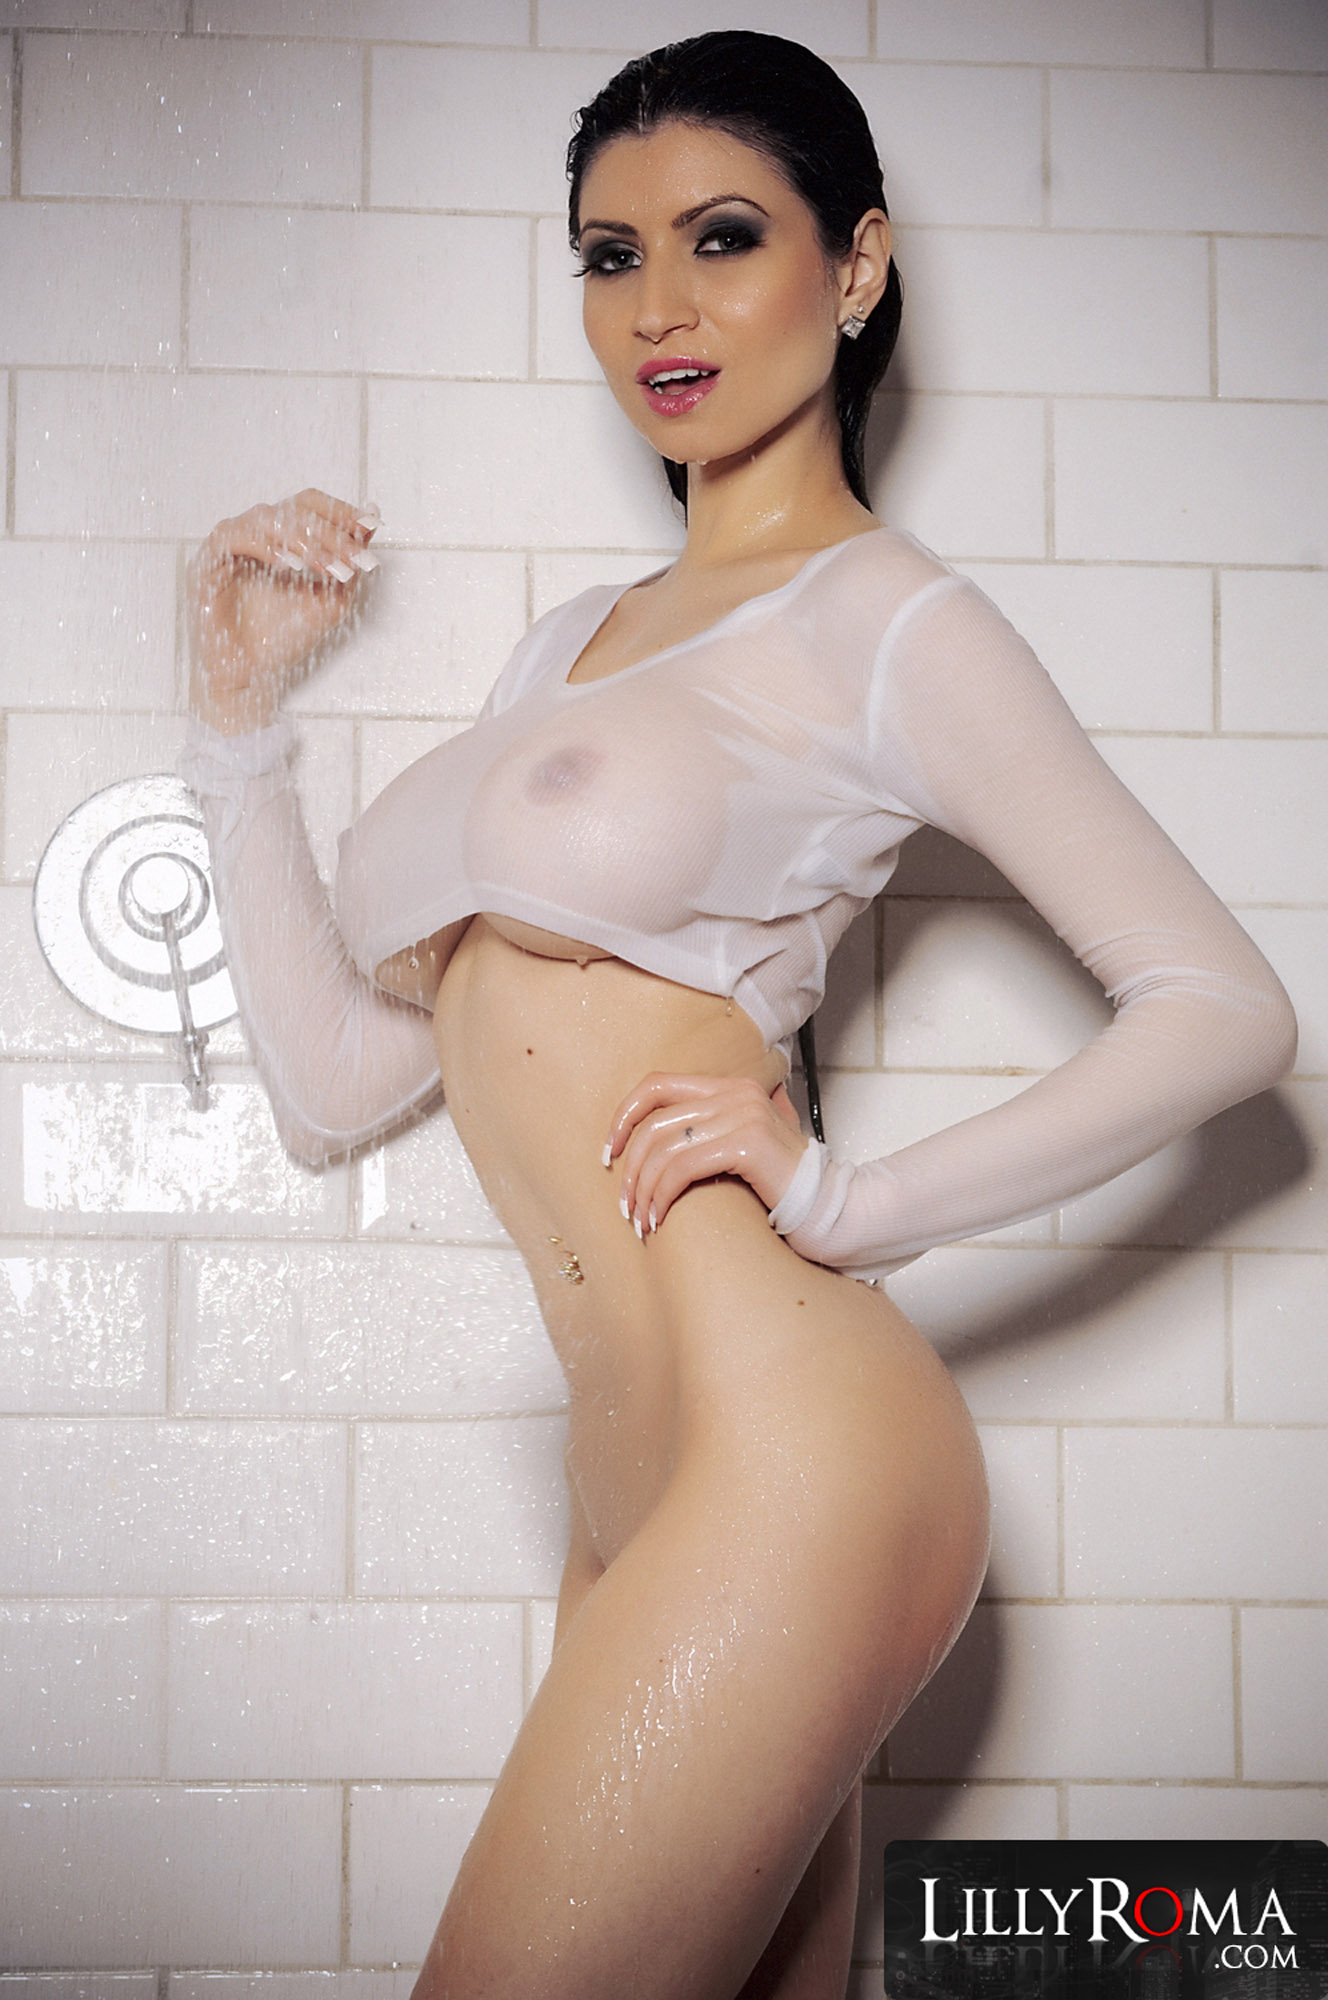 lilly-roma-boobs-shower-nude-wet-04